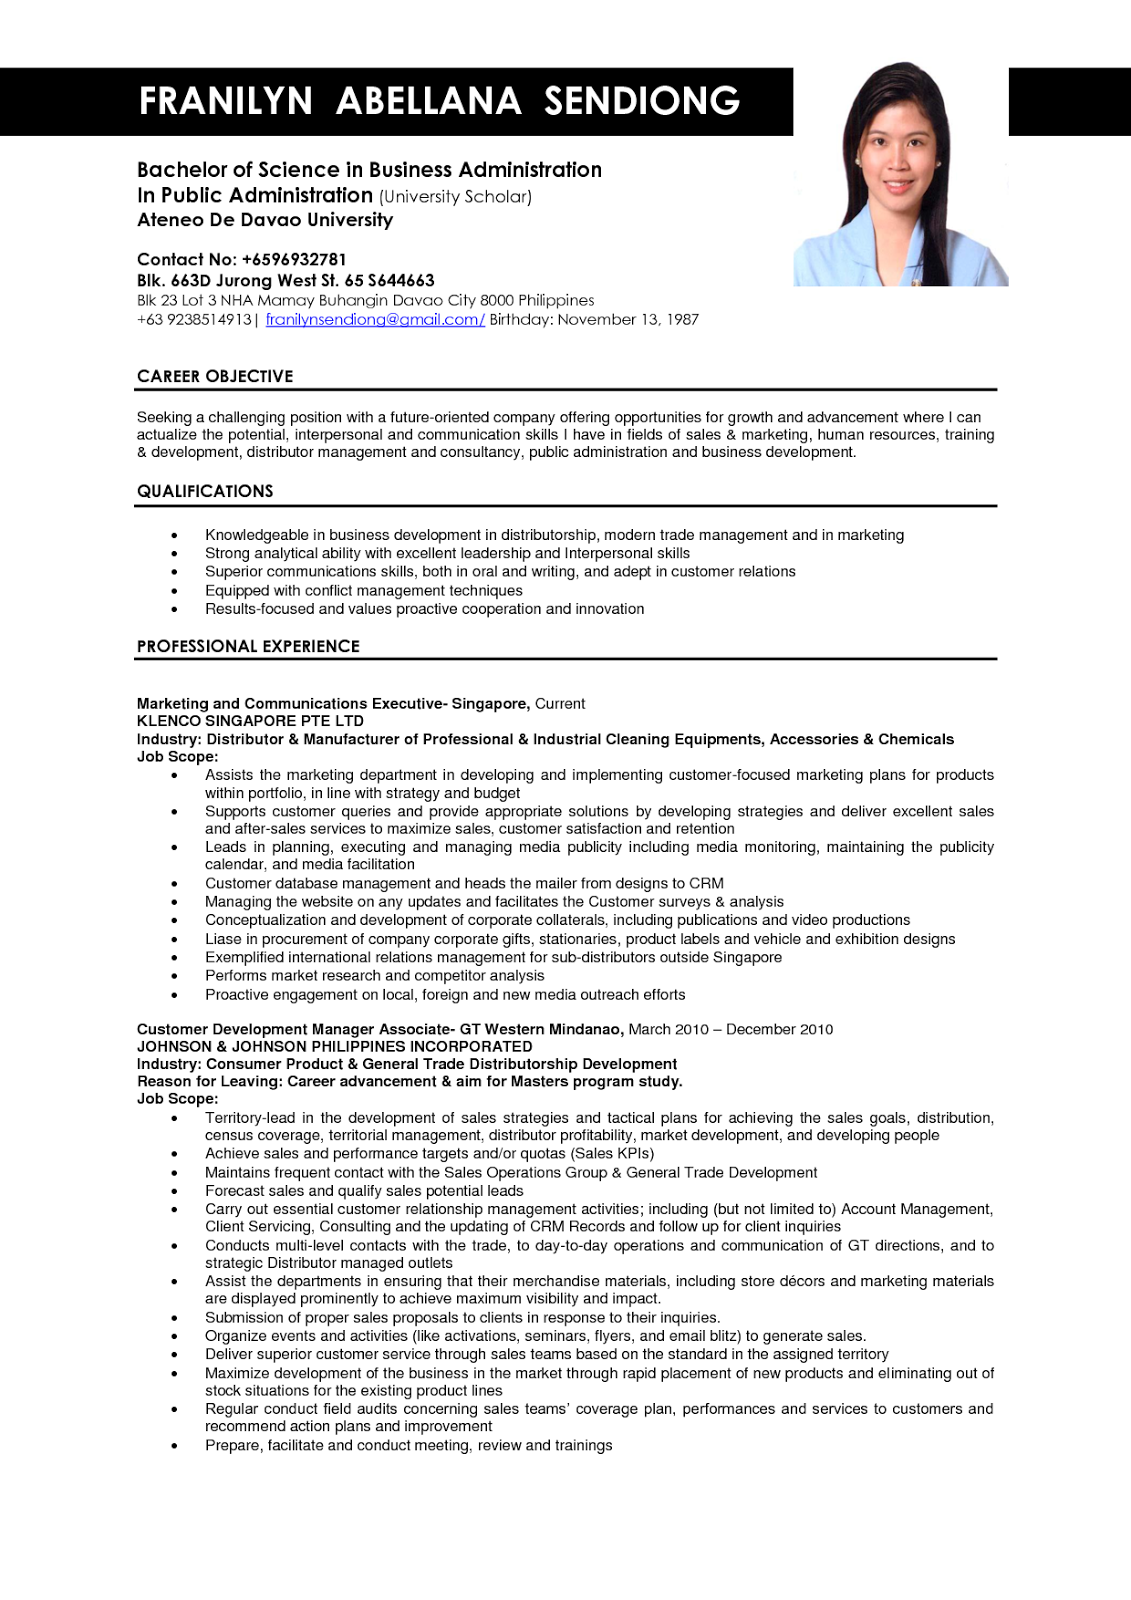 Resume Samples For Professionals Business Administration Resume Samples Sample Resumes